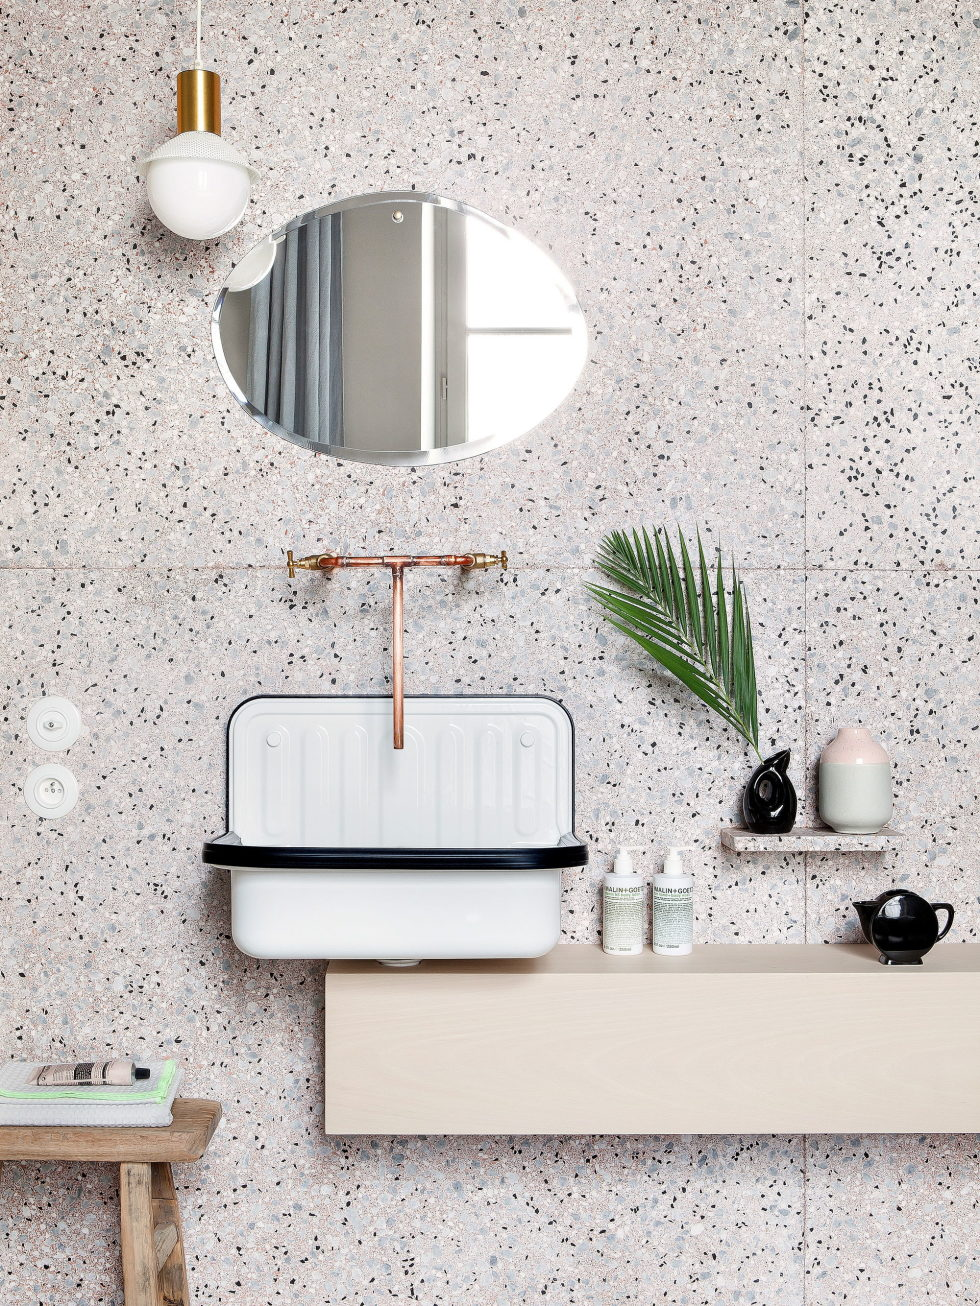 chez-marie-sixtine-the-apartment-for-guests-in-marie-sixtine-store-6